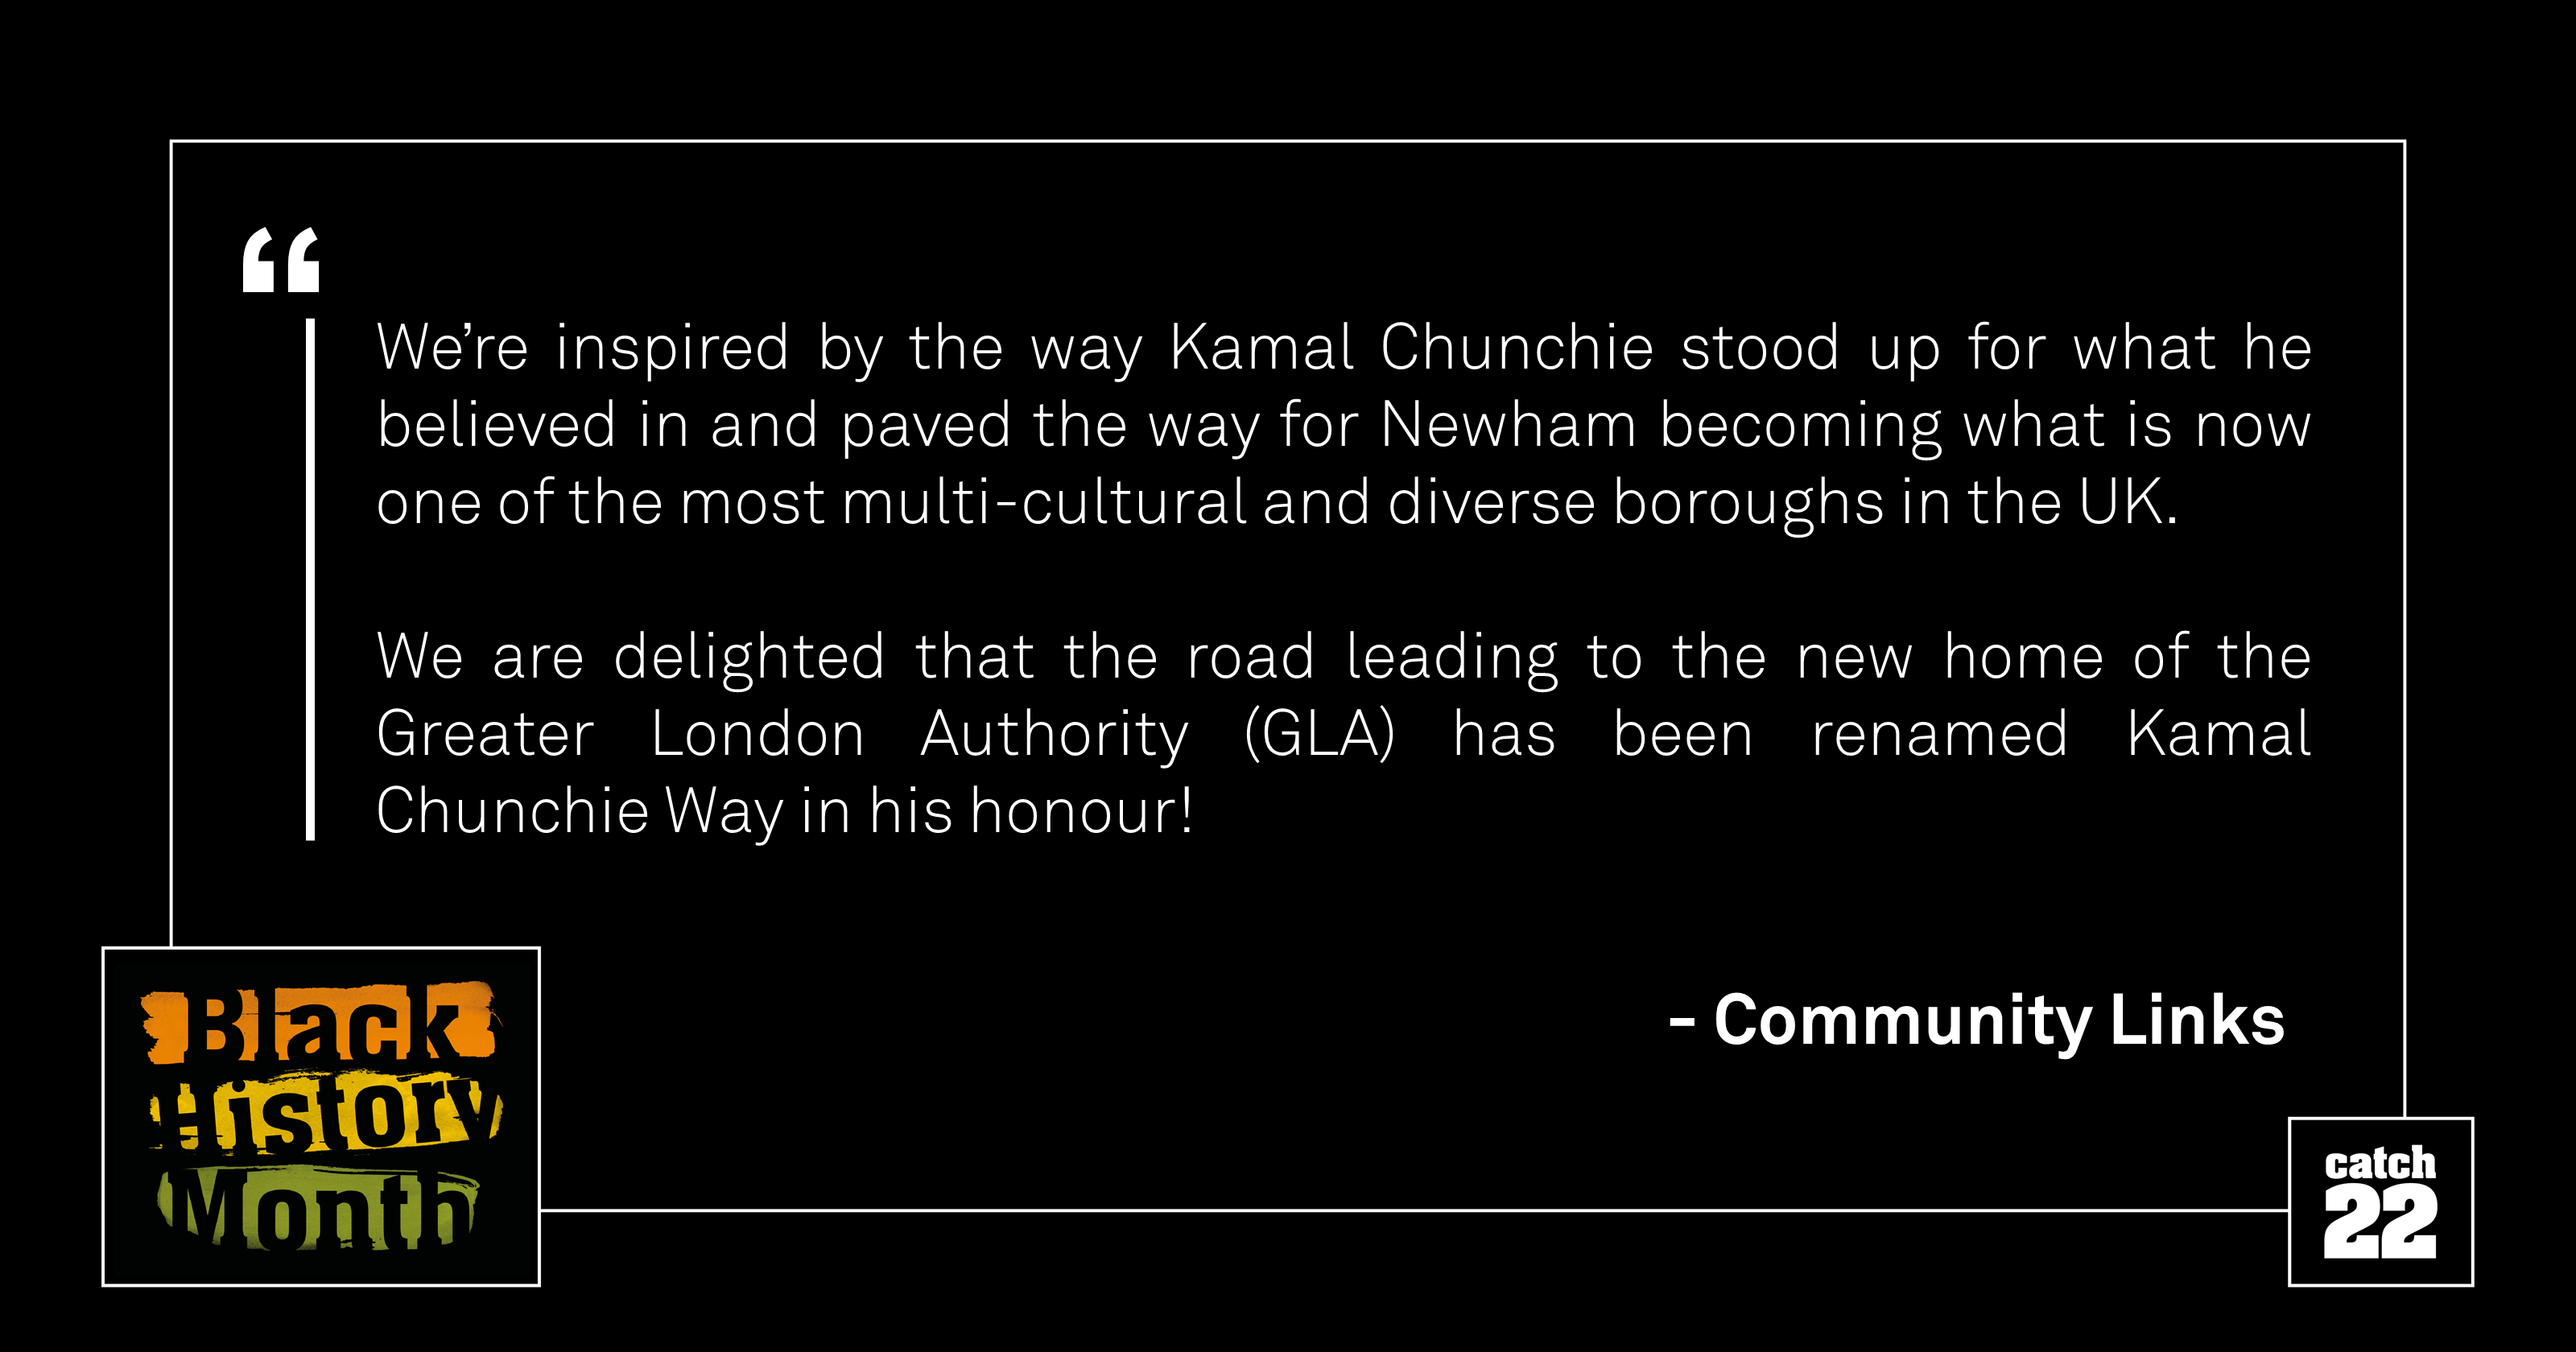 We're inspired by the way Kamal Chunchie stood up for what he believed in and paved the way for Newham becoming what is now one of the most multi-cultural and diverse boroughs in the UK. We are delighted that the road leading to the new home of the Greater London Authority (GLA) has been renamed Kamal Chunchie Way in his honour!